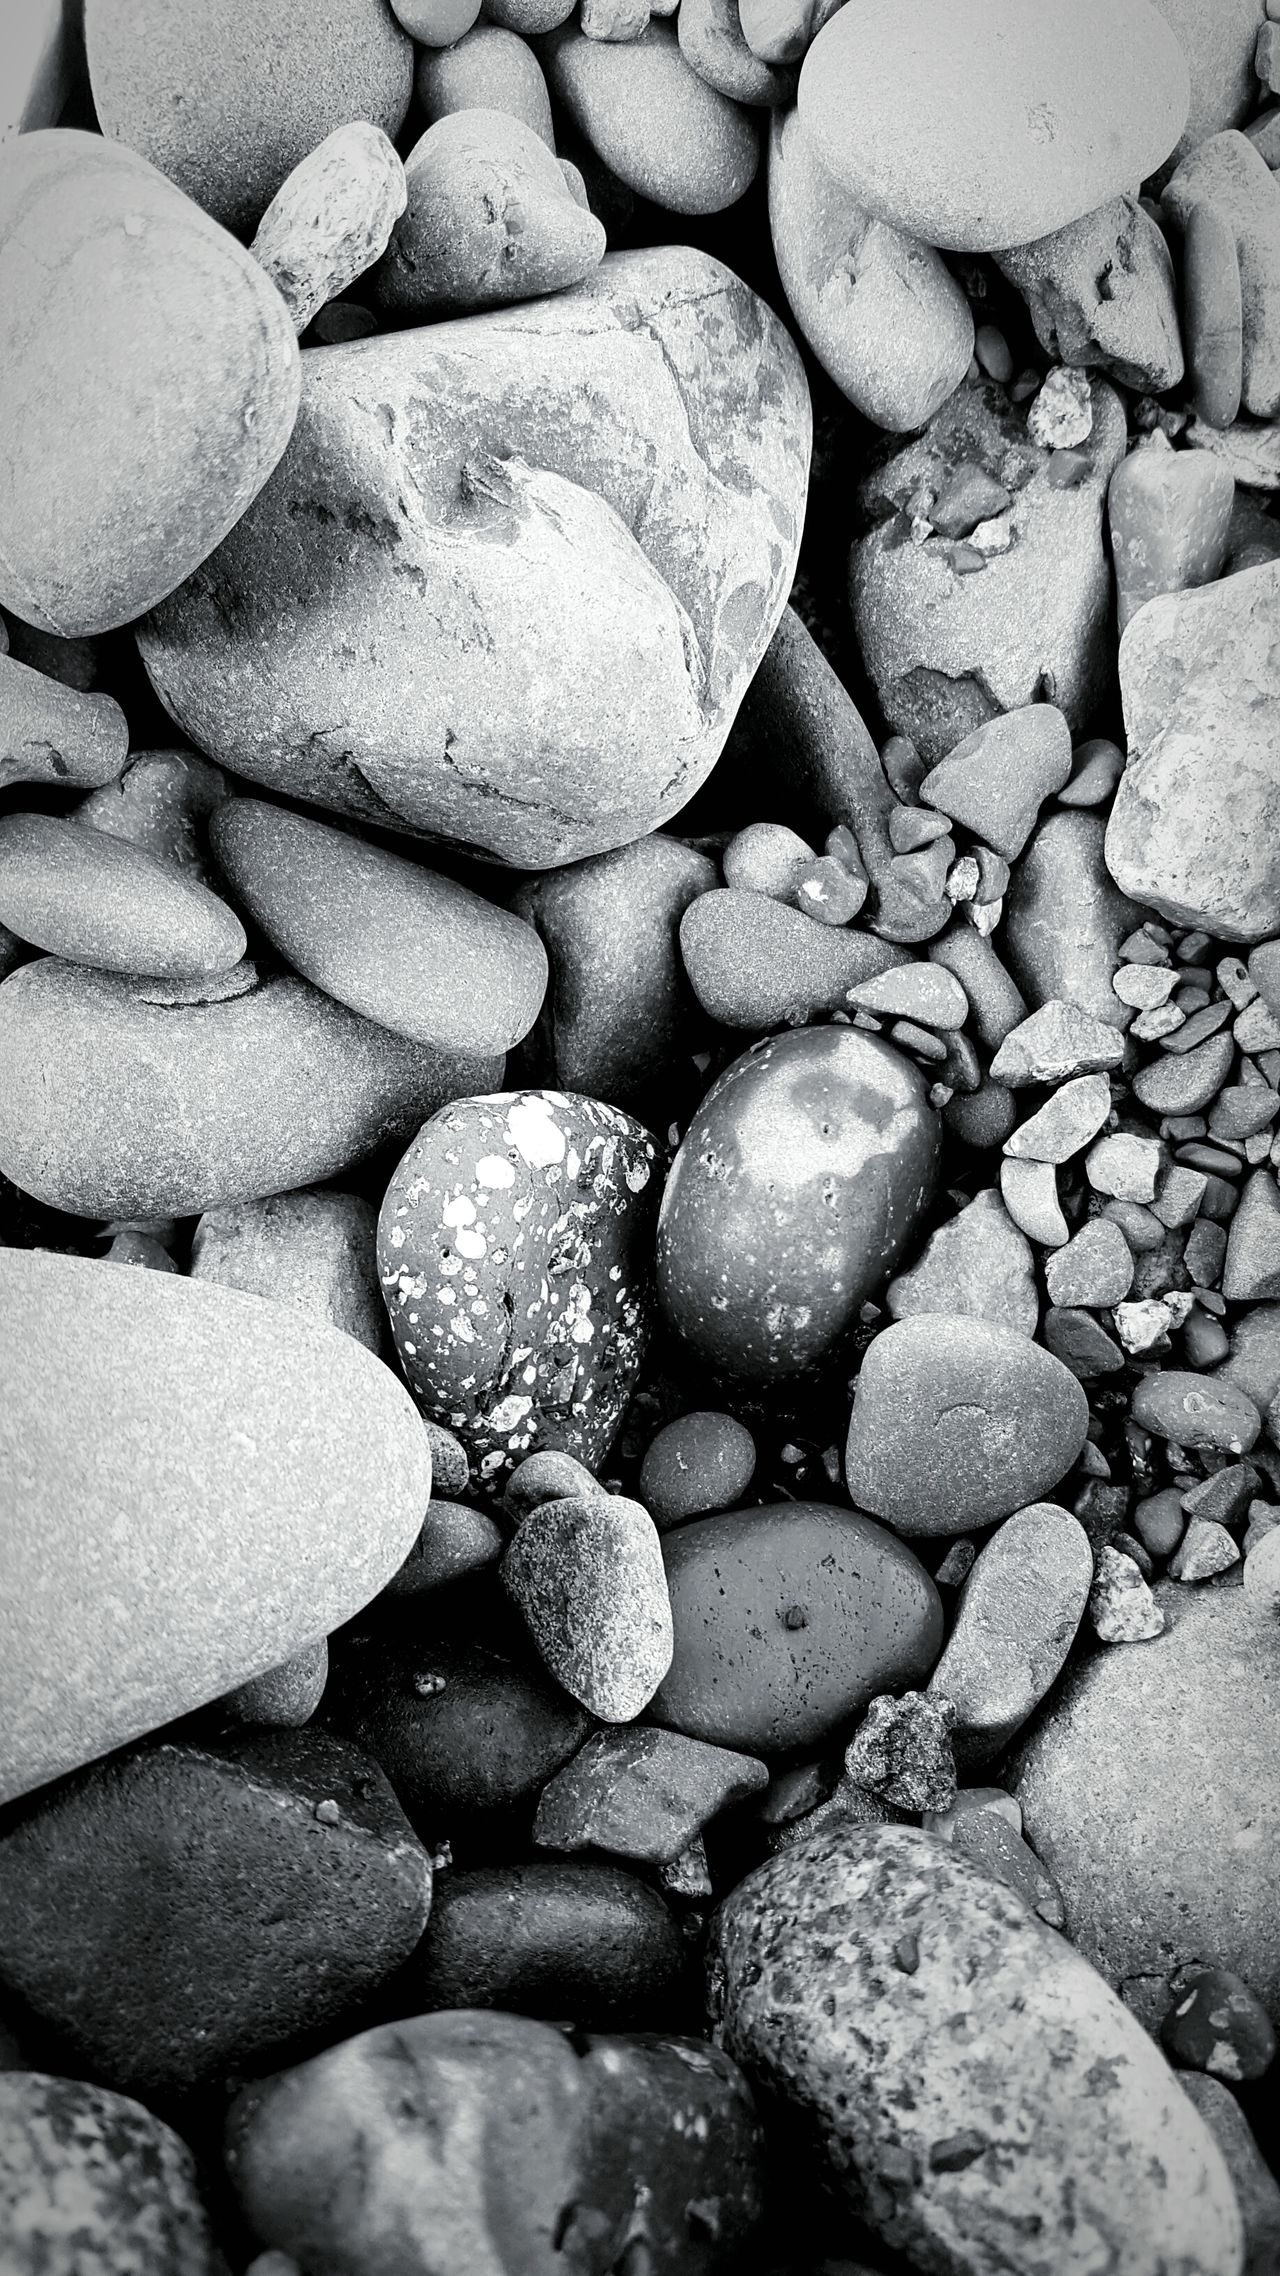 Maximum Closeness Pebble Beach Full Frame Pebble Beach Outdoors Freshness Close-up Coastline DuluthMN Rocky Lake Superior Stone - Object Tranquil Scene Beauty In Nature Pebble Beach Rock Full Length Backgrounds No People